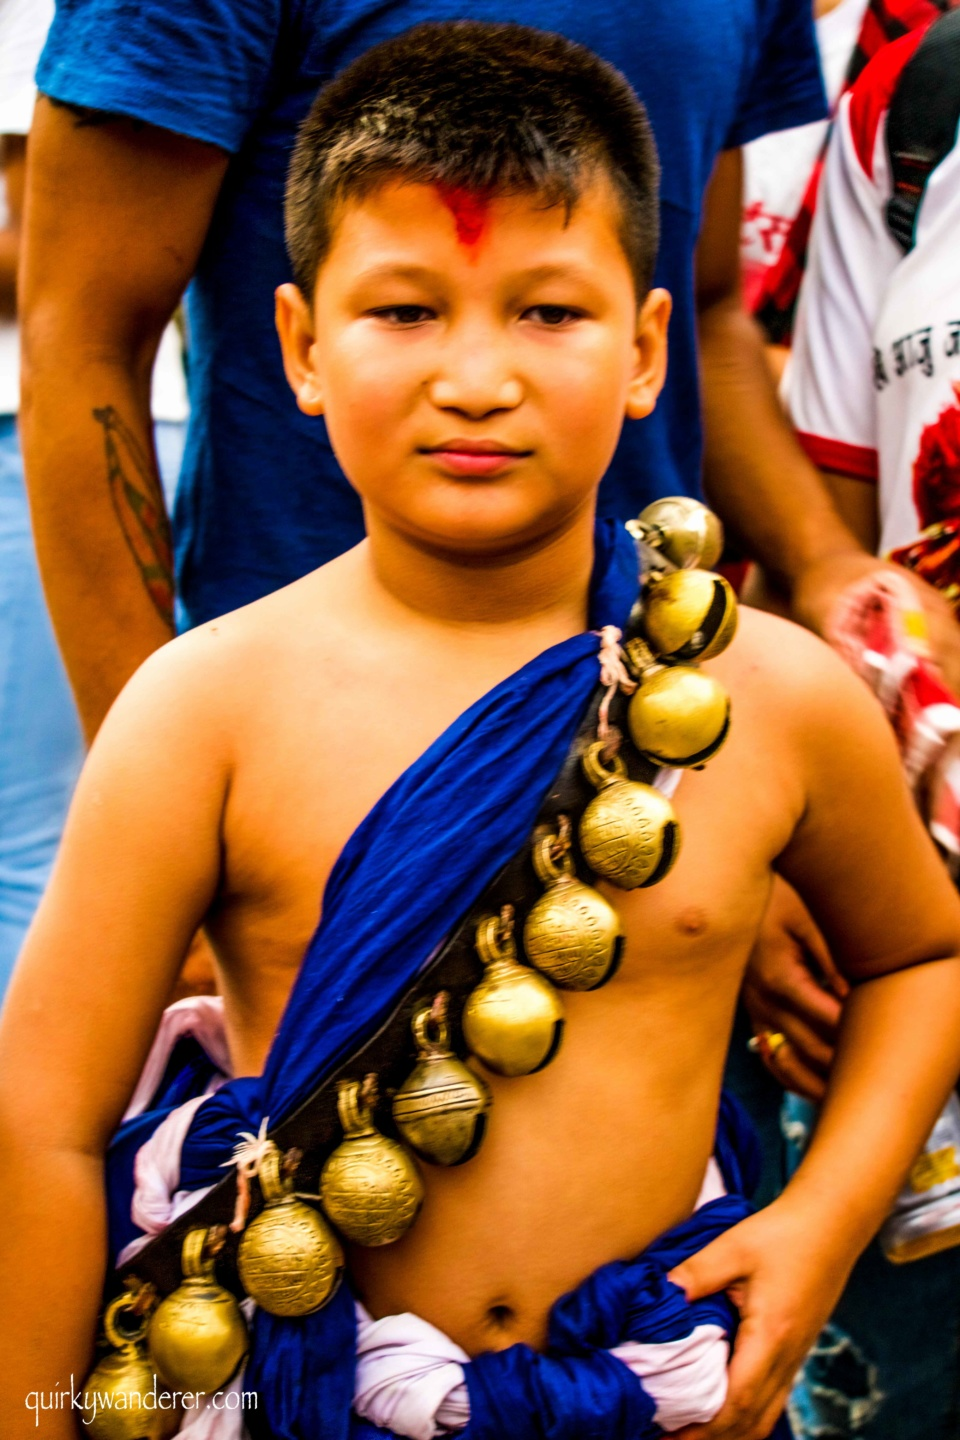 Costumes in the Kumari festival